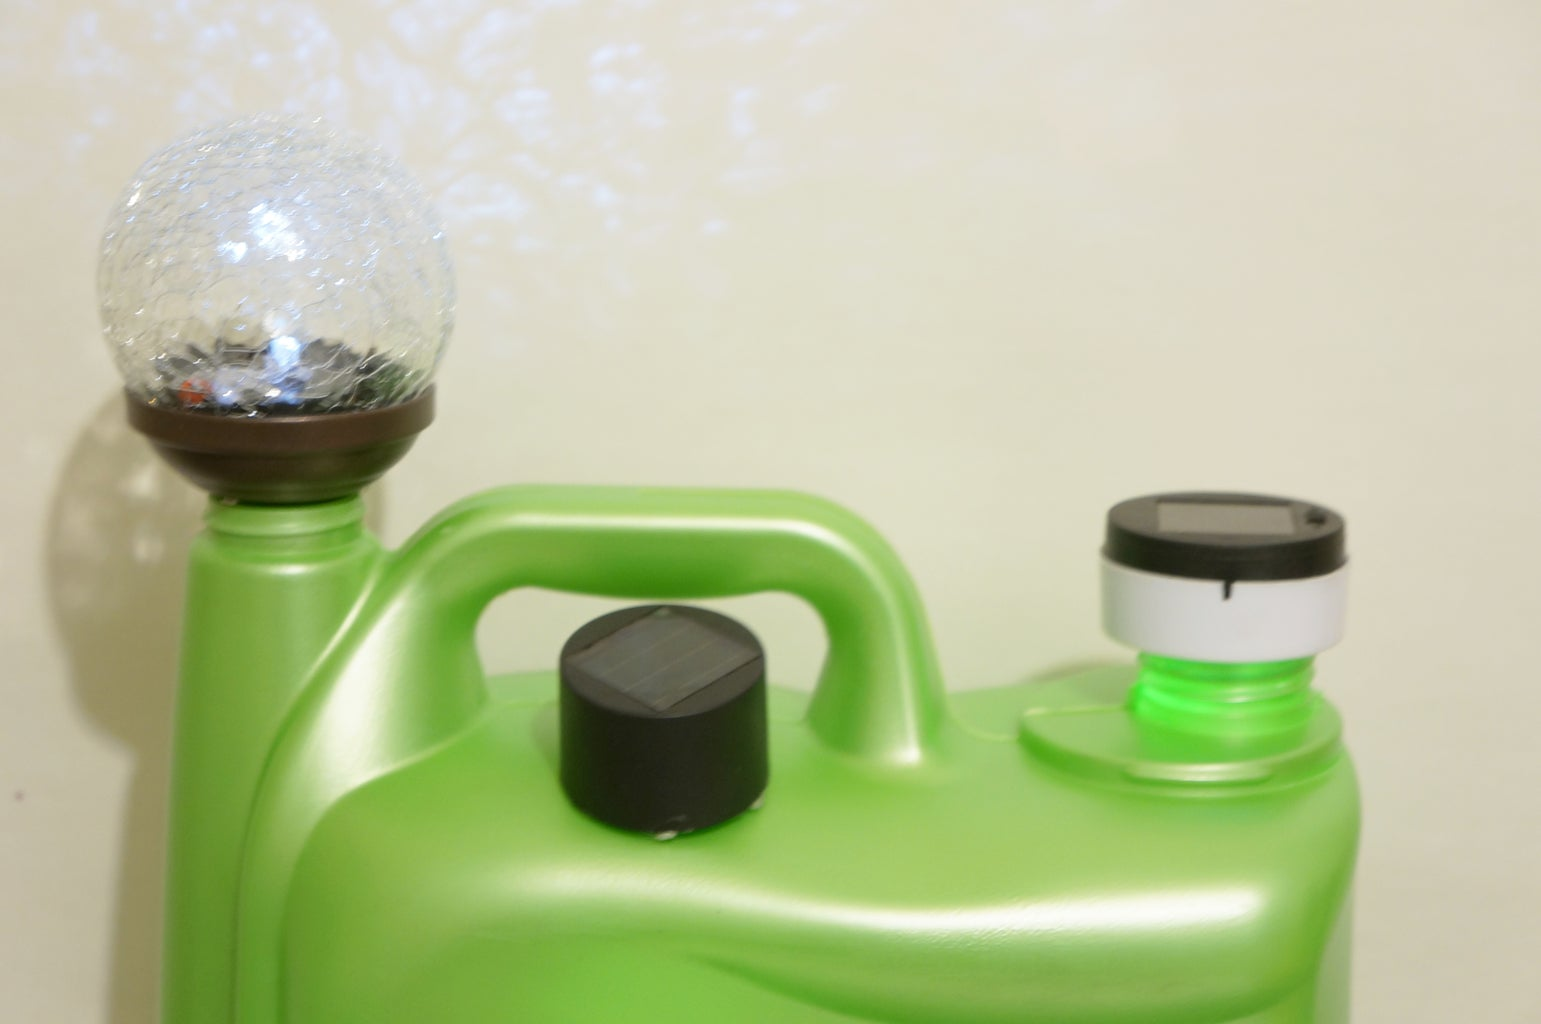 Drill and Glue the Solar Lights to the Jug